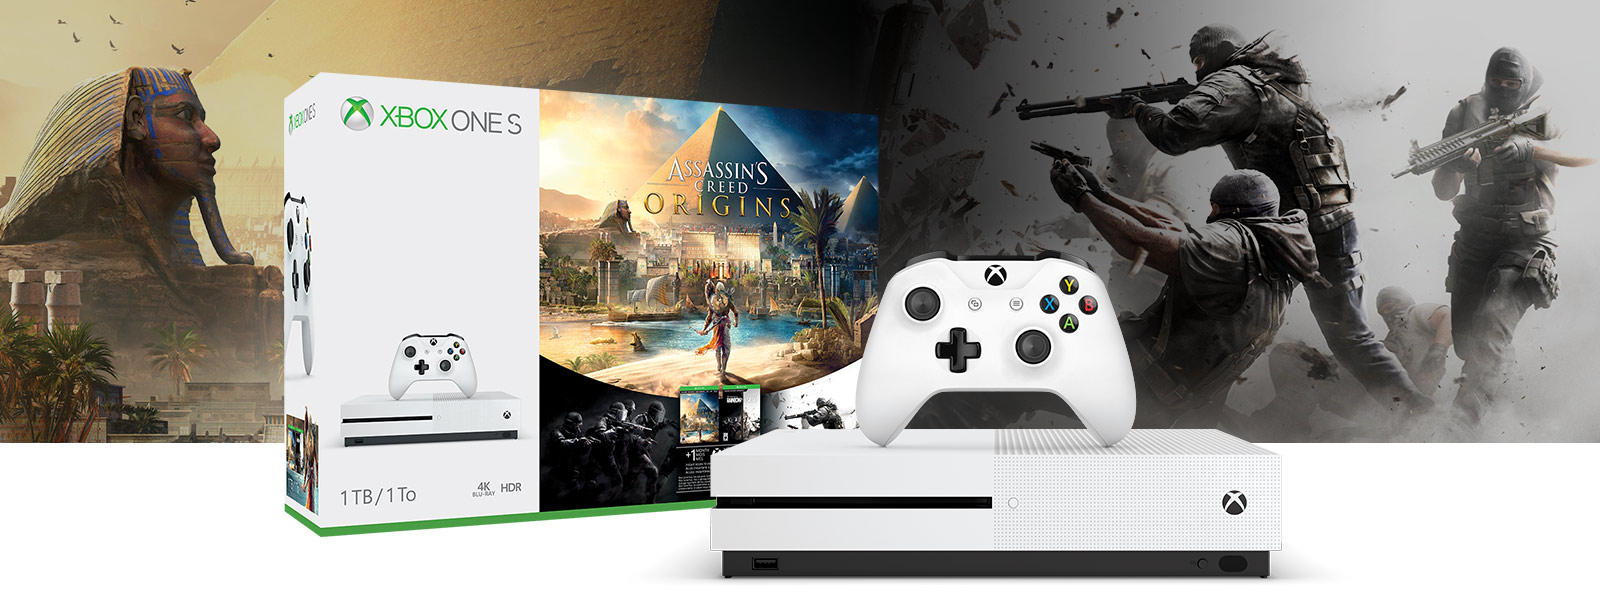 Assassins Creed Origins Bonus 1TB Xbox One